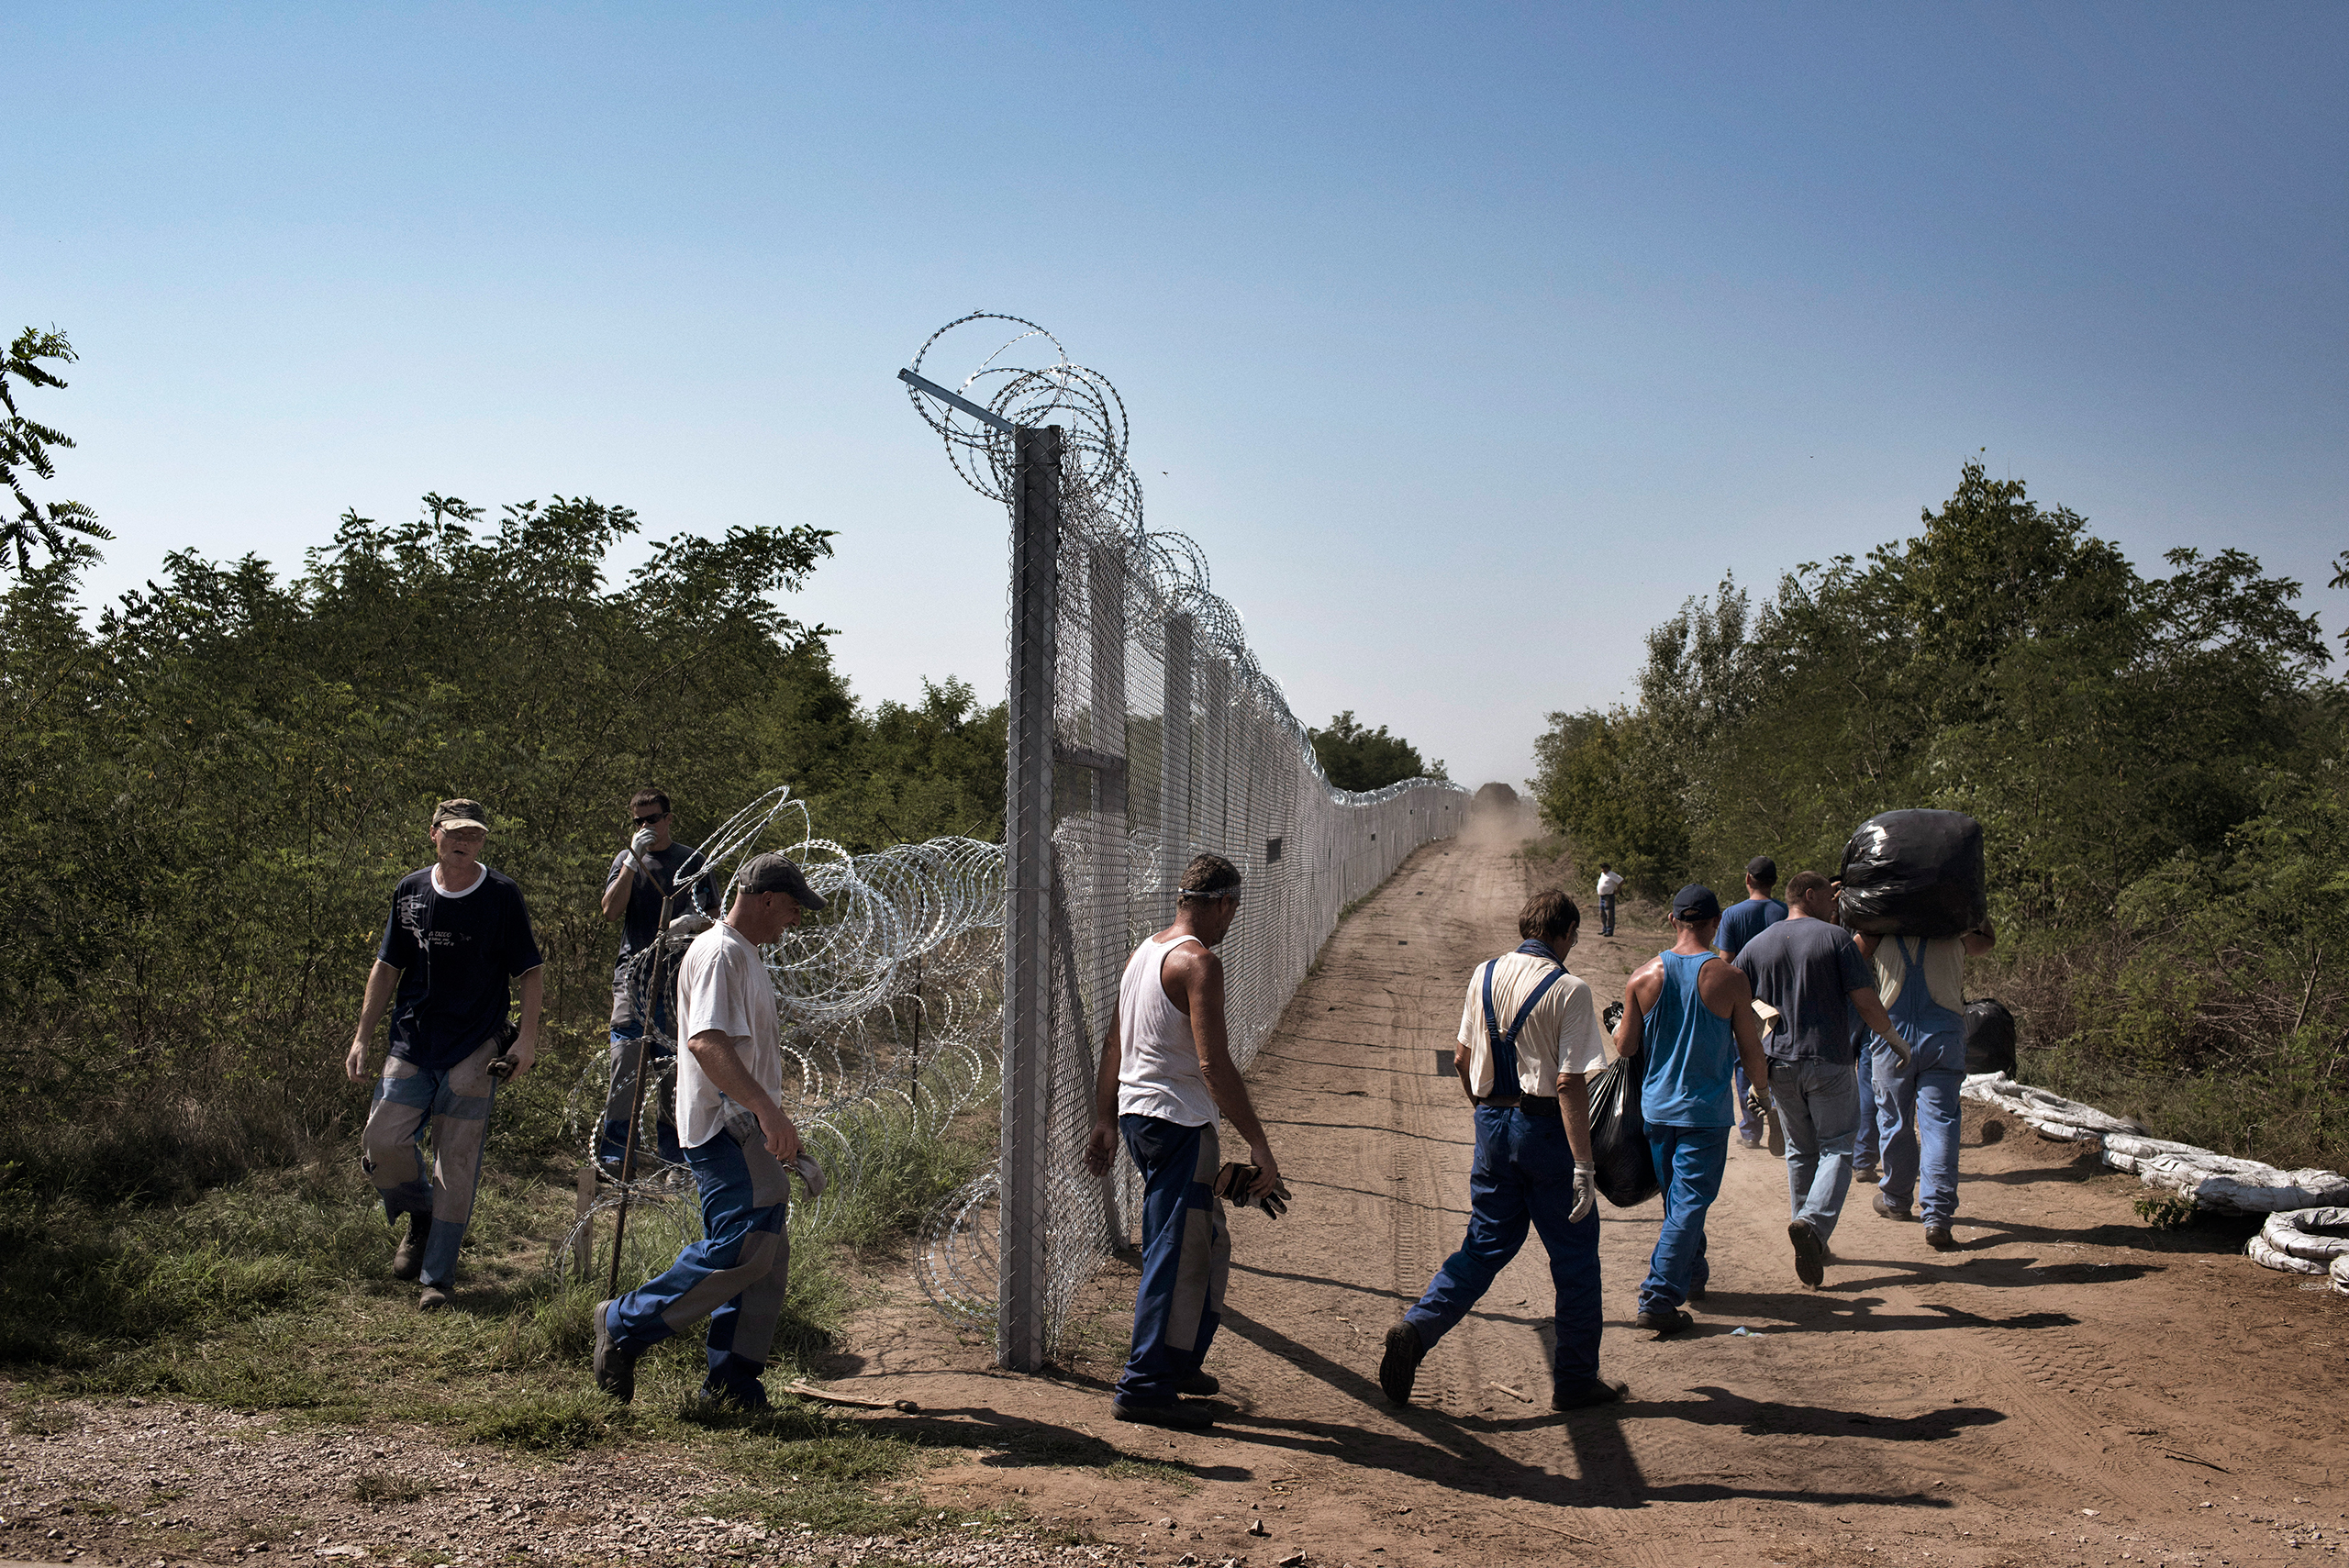 Local workers build up a fence to guard against migrants in Ásotthalom, Hungary, September 2015.